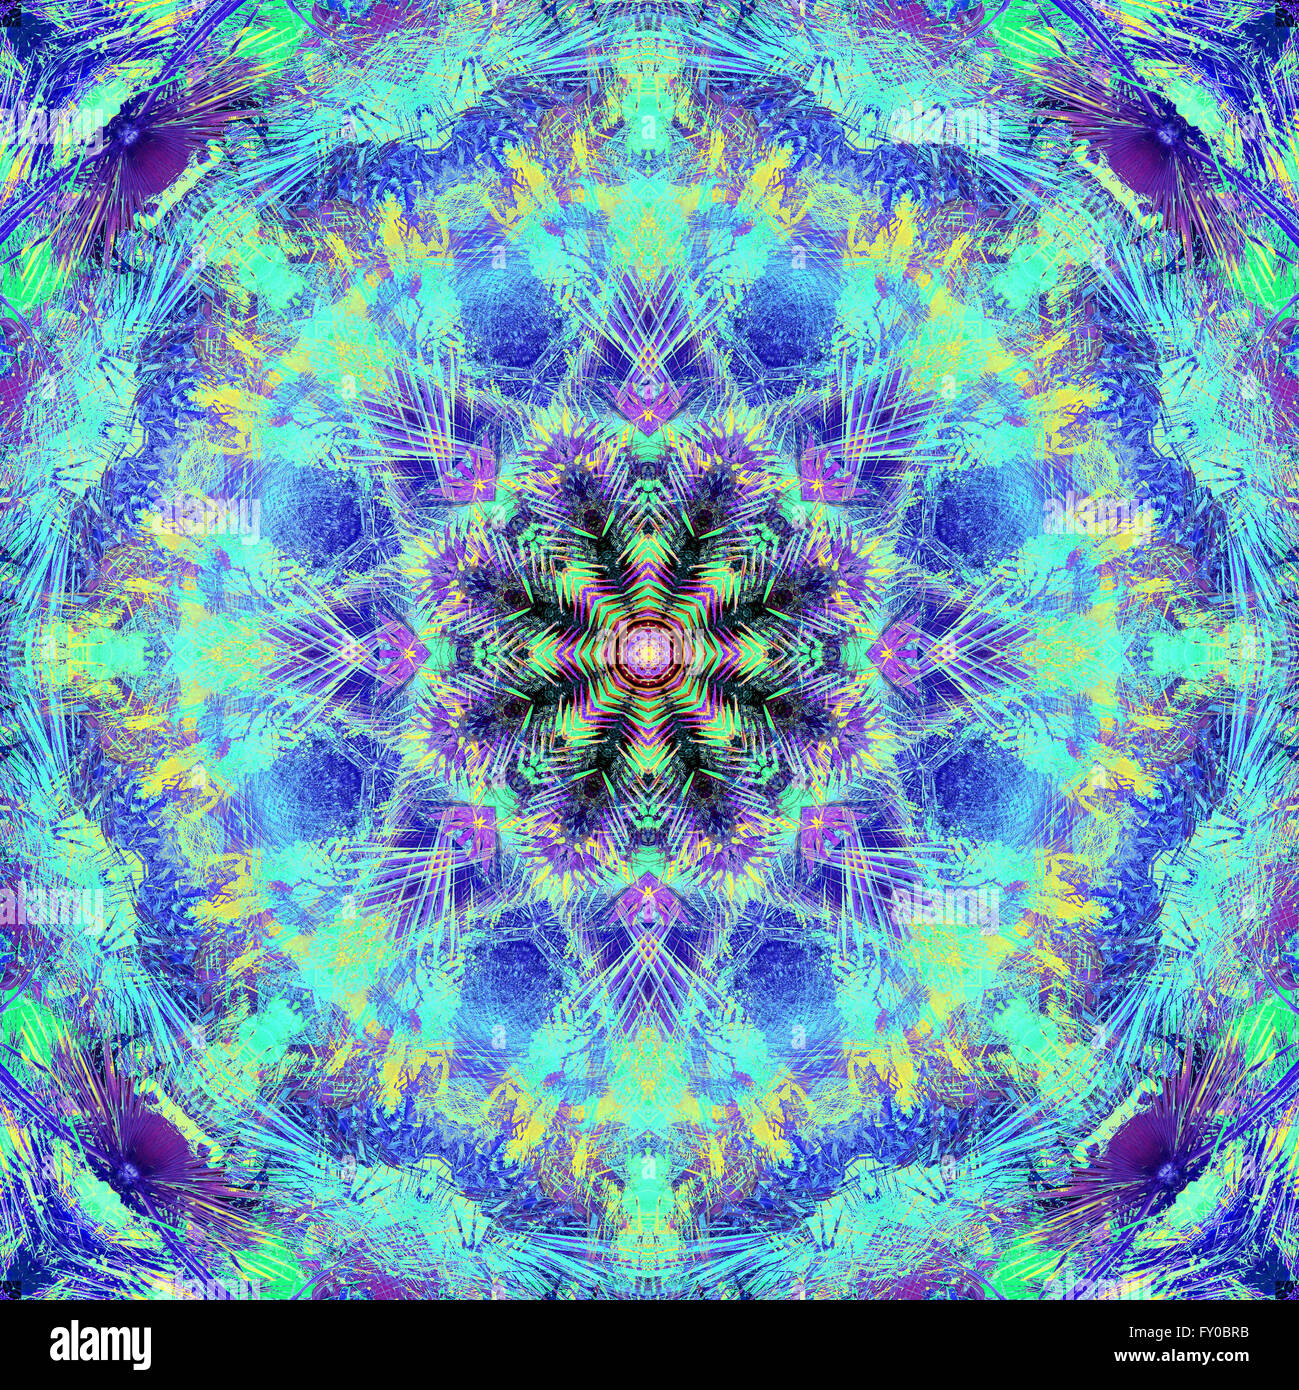 Abstract mandala picture - Stock Image